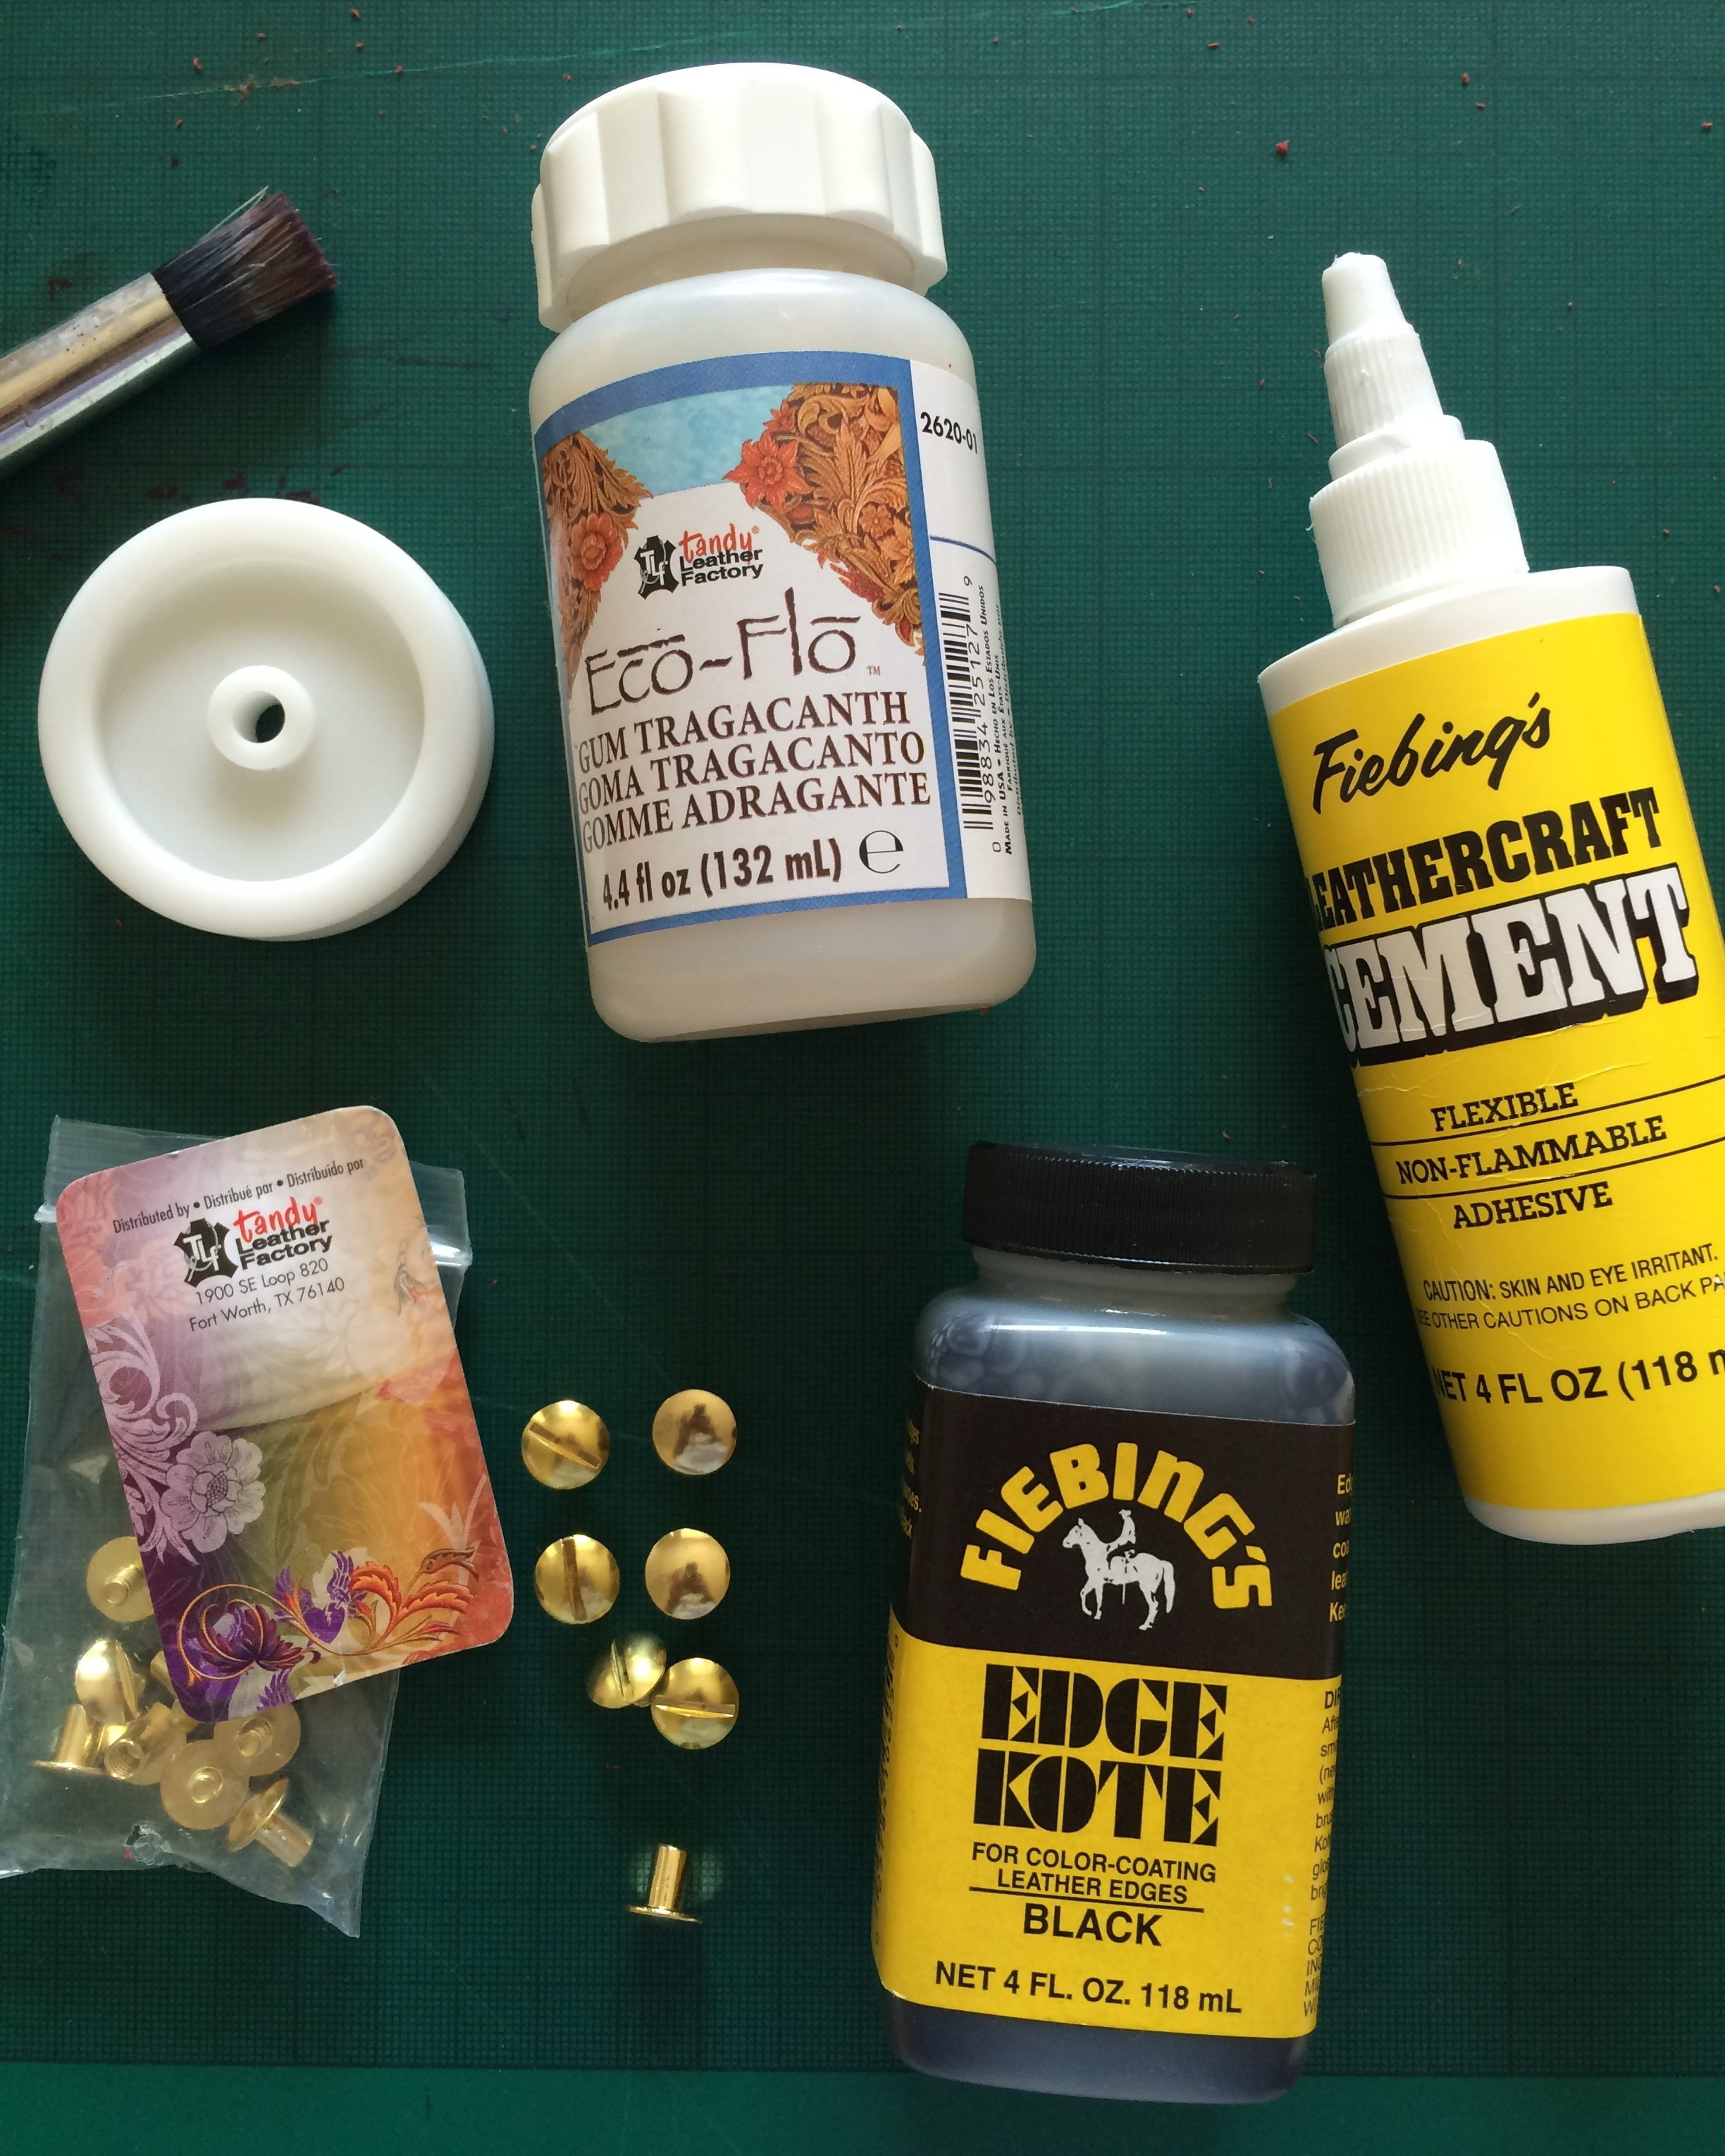 Clockwise from left to right: the edge slicker; used in conjunction with the Gum Tragacanth to burnish and neaten the raw edges; Fiebing's leathercraft cement (i.e. leather glue!); Edge Kote to paint the raw edges; and finally the brass screw rivets (or Chicago screws as the website calls them).